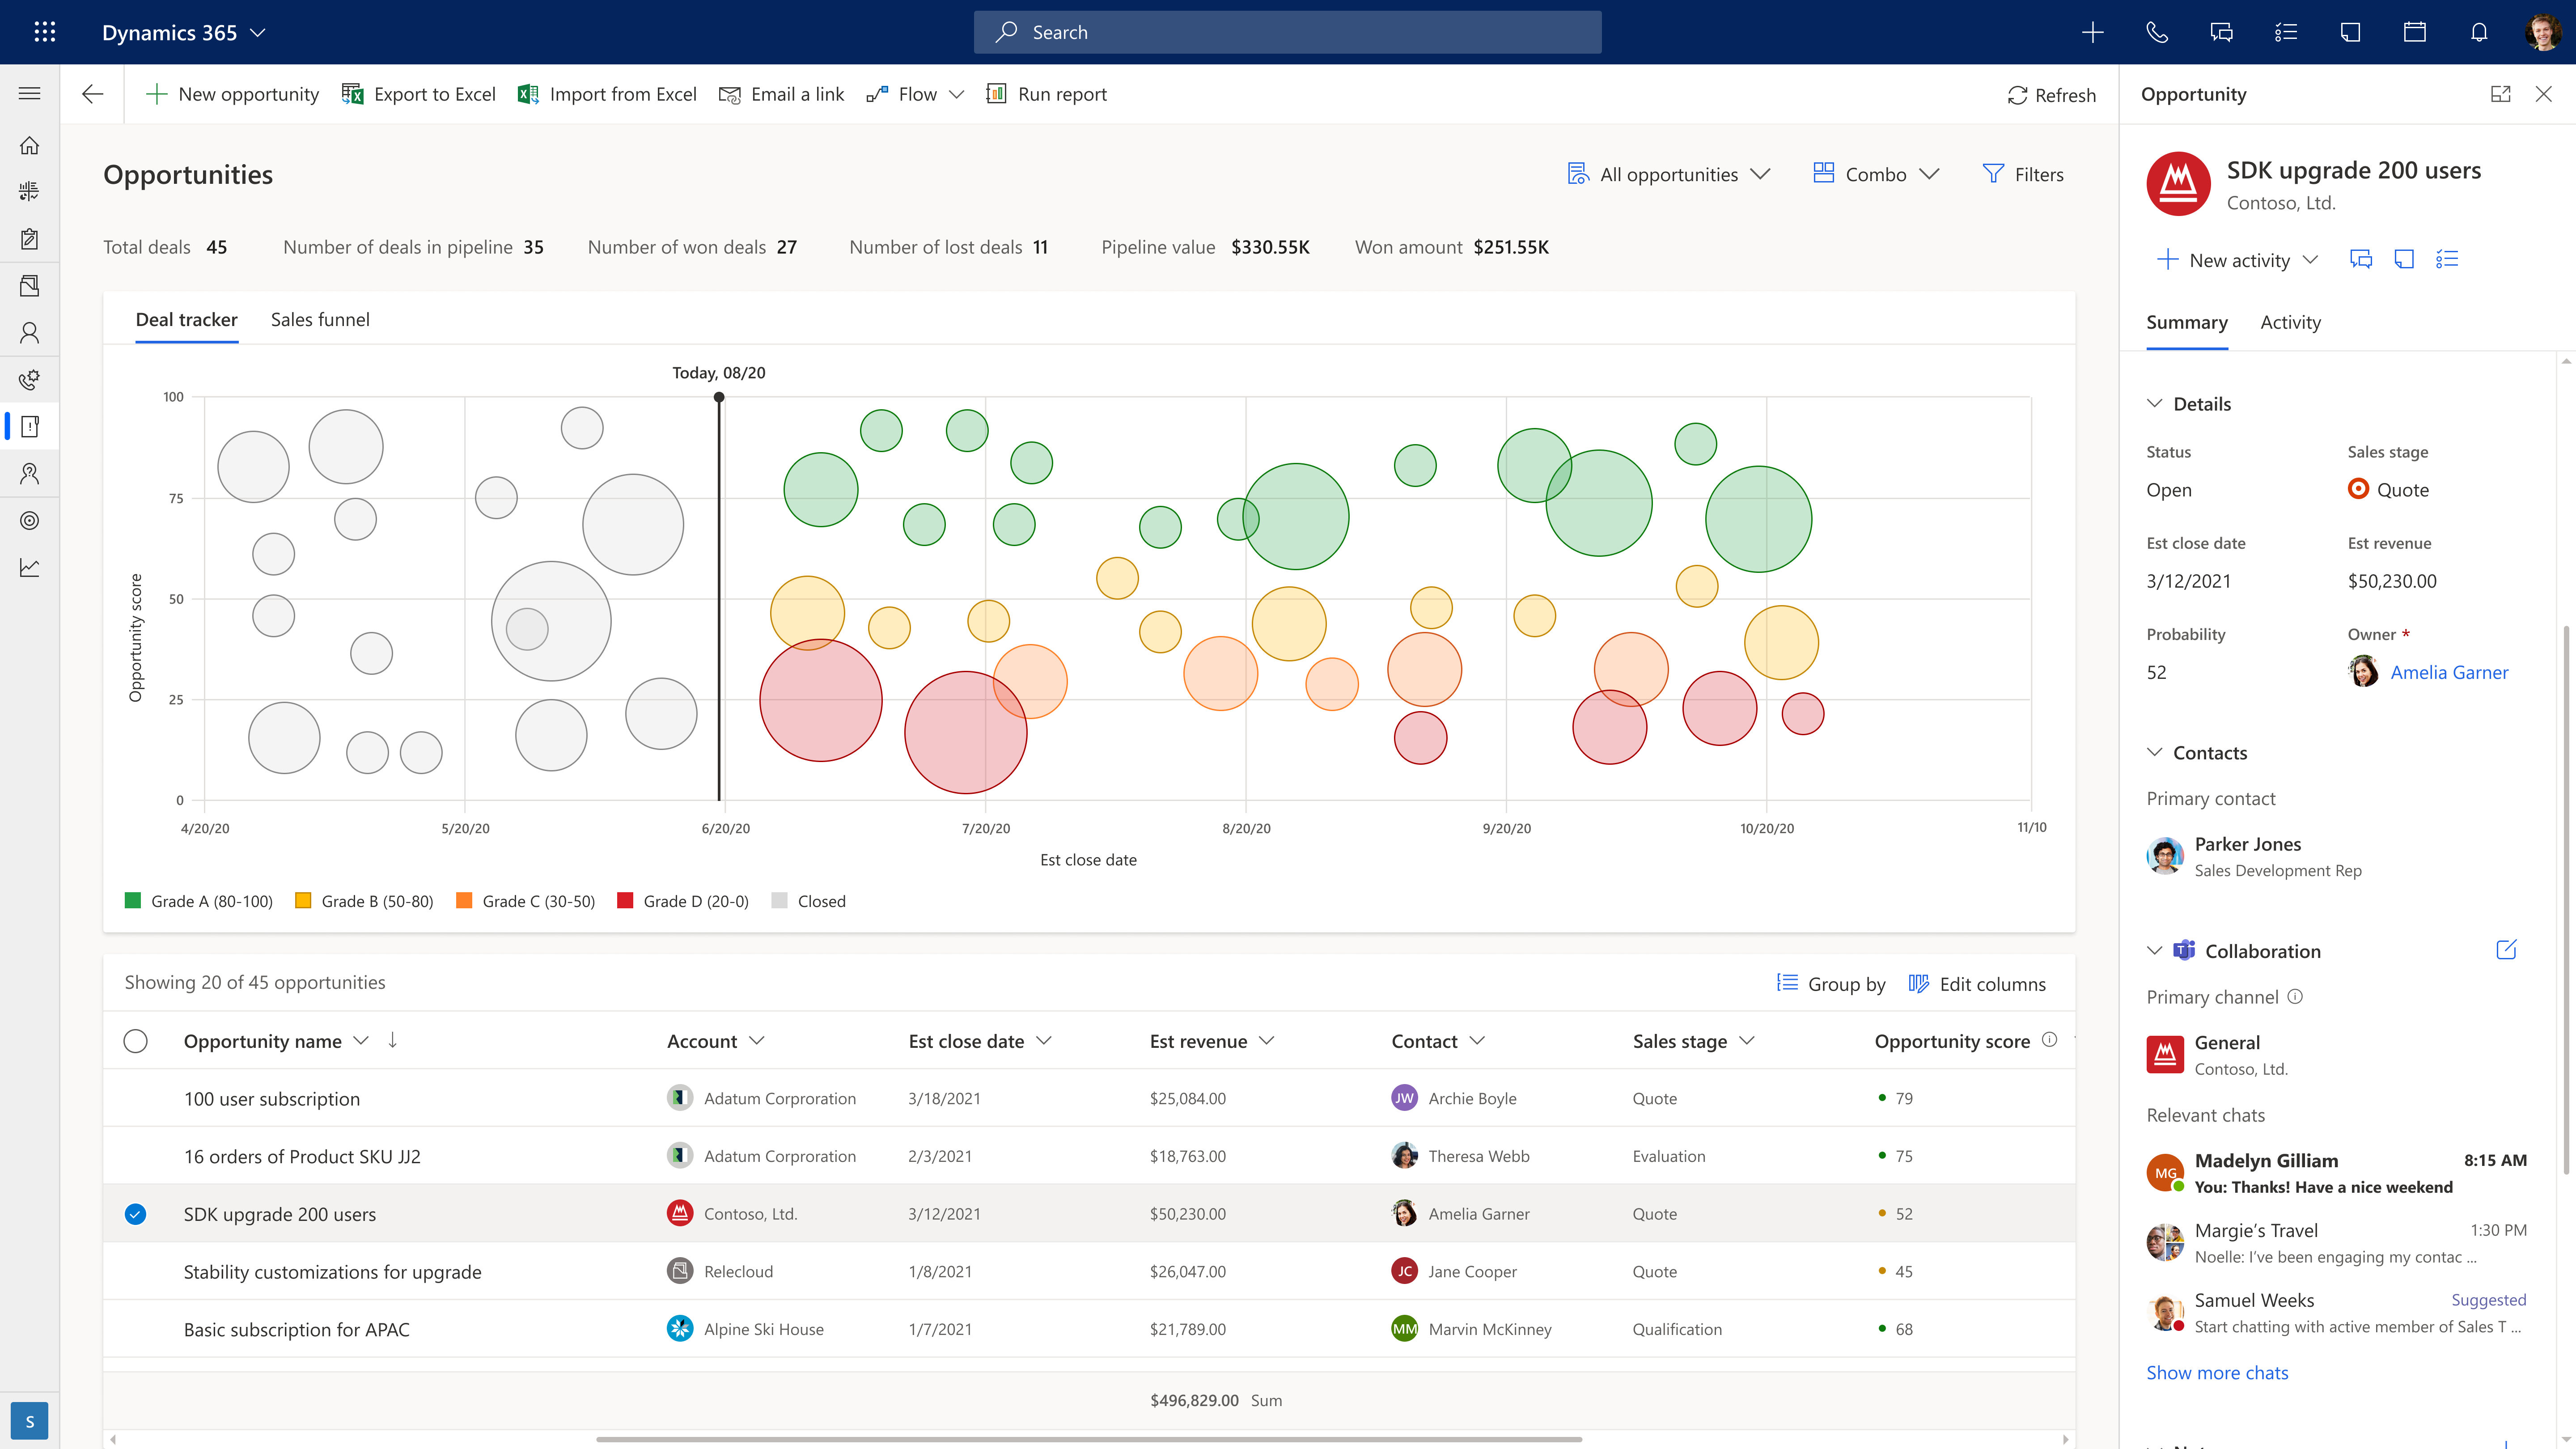 Newly optimized opportunity manager workspace with pipeline management visualizations